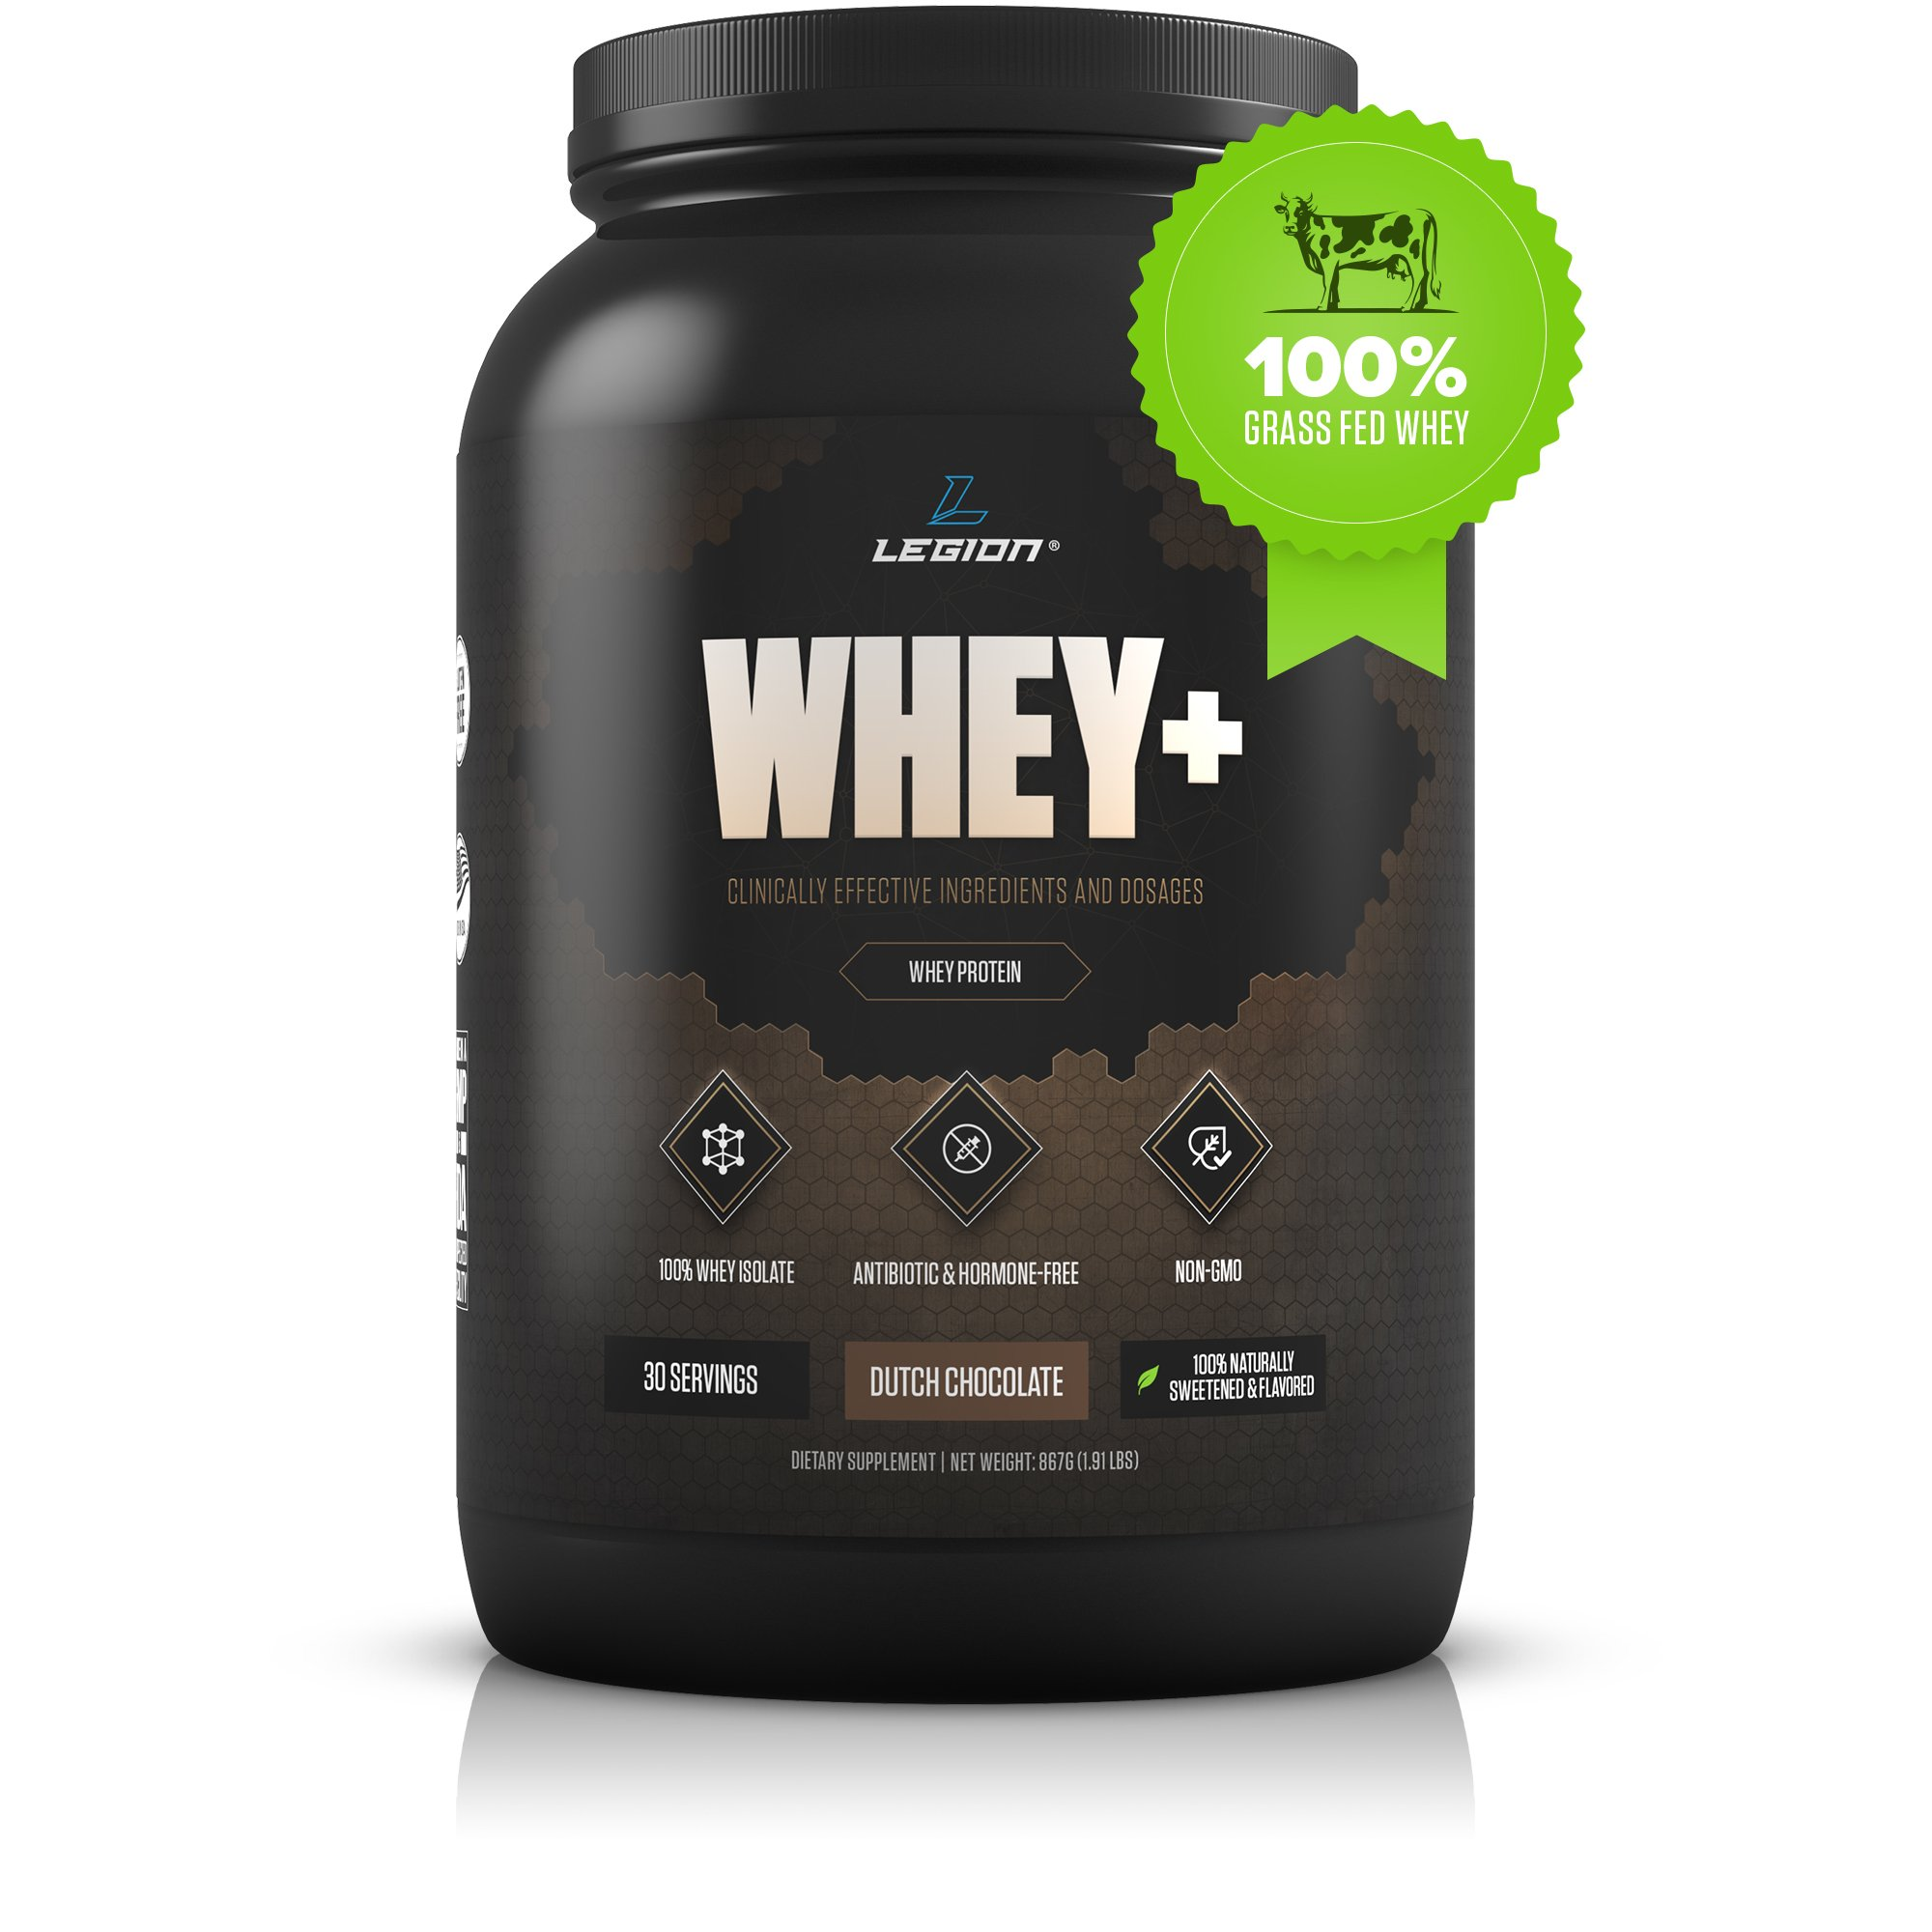 Legion Whey+ Chocolate Whey Isolate Protein Powder from Grass Fed Cows - Low Carb, Low Calorie, Non-GMO, Lactose Free, Gluten Free, Sugar Free. Great For Weight Loss & Bodybuilding, 30 Servings. by LEGION